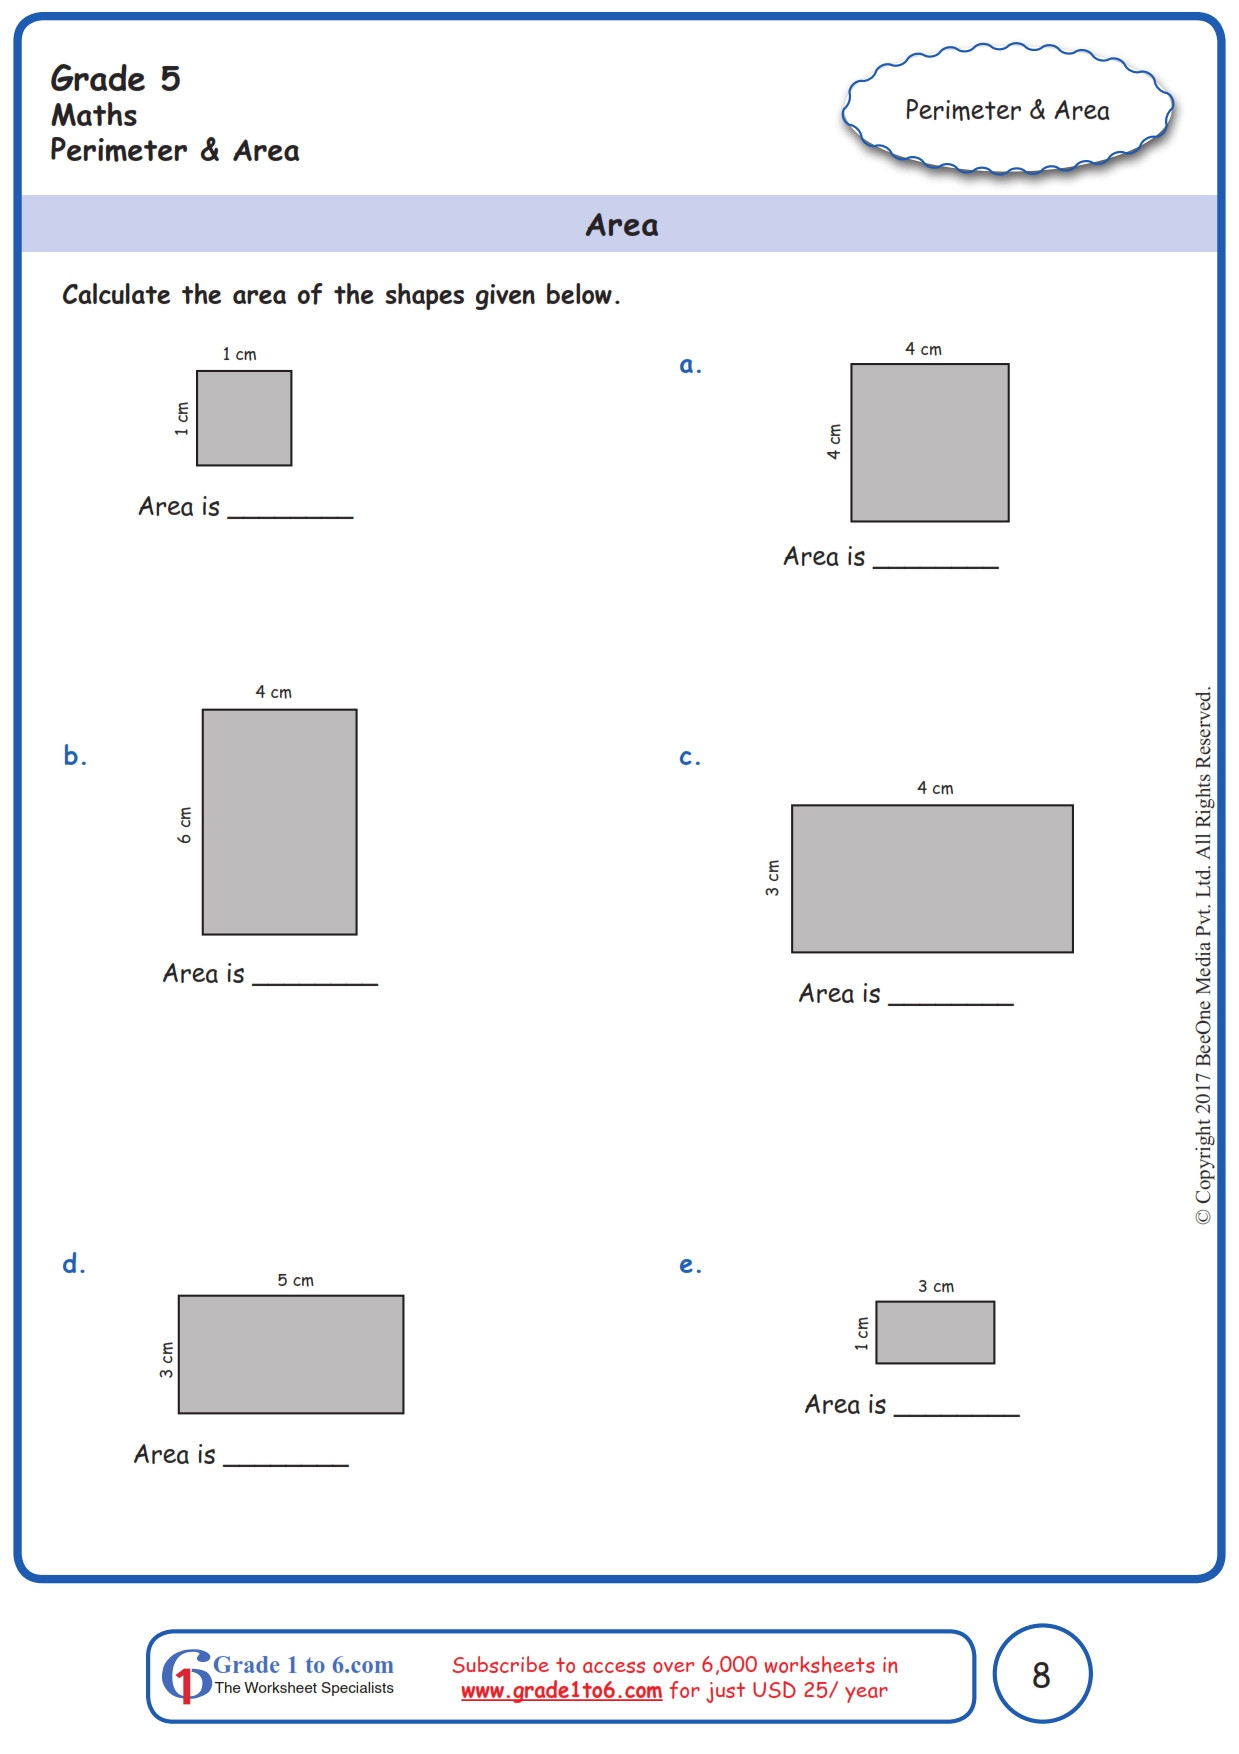 Third Grade Perimeter Worksheets Free Perimeter and area Worksheets Grade 5